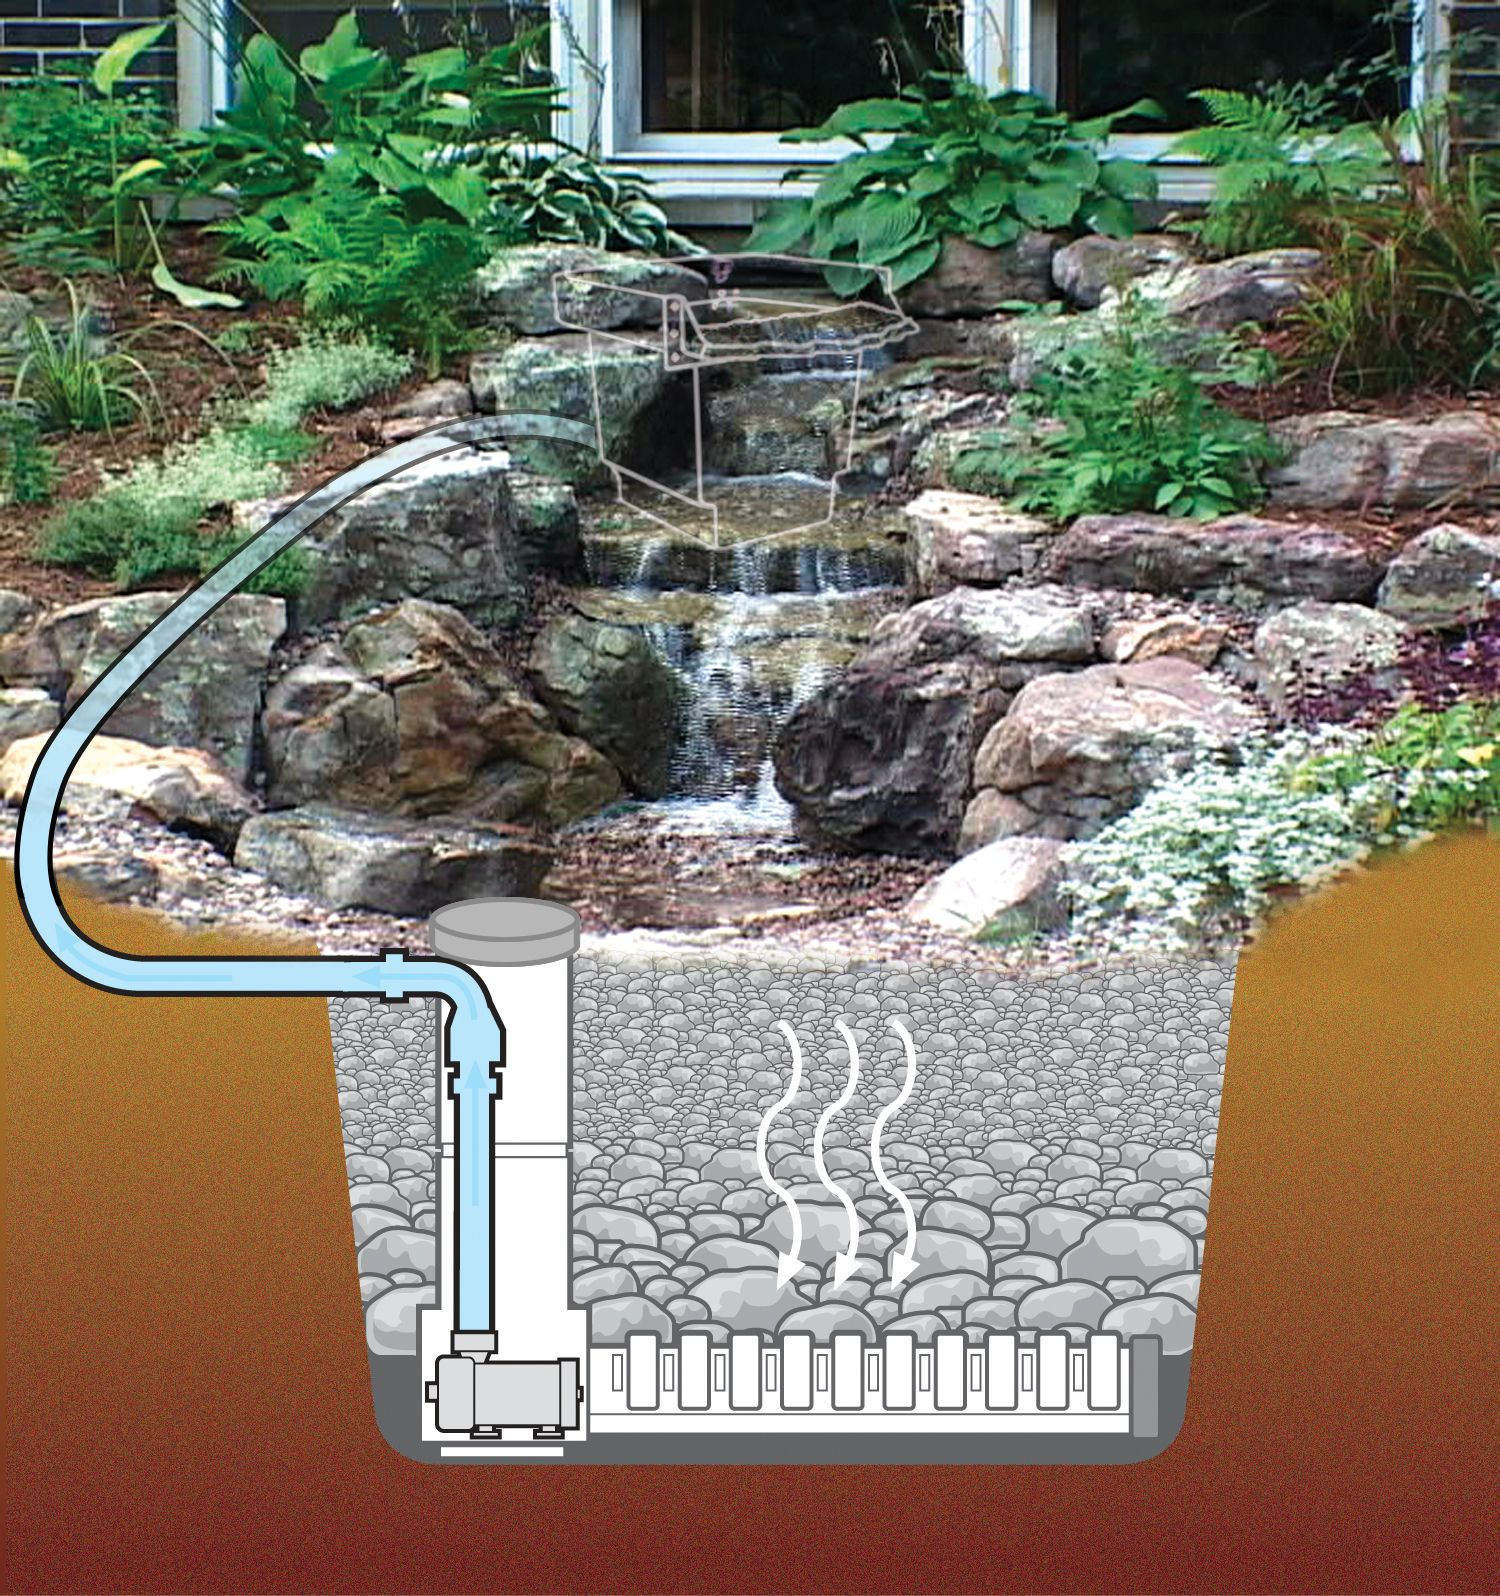 Pondless Waterfall Pictures Diagram By Aquascape Designs Shows Pond Plans And Whats Underneathwww